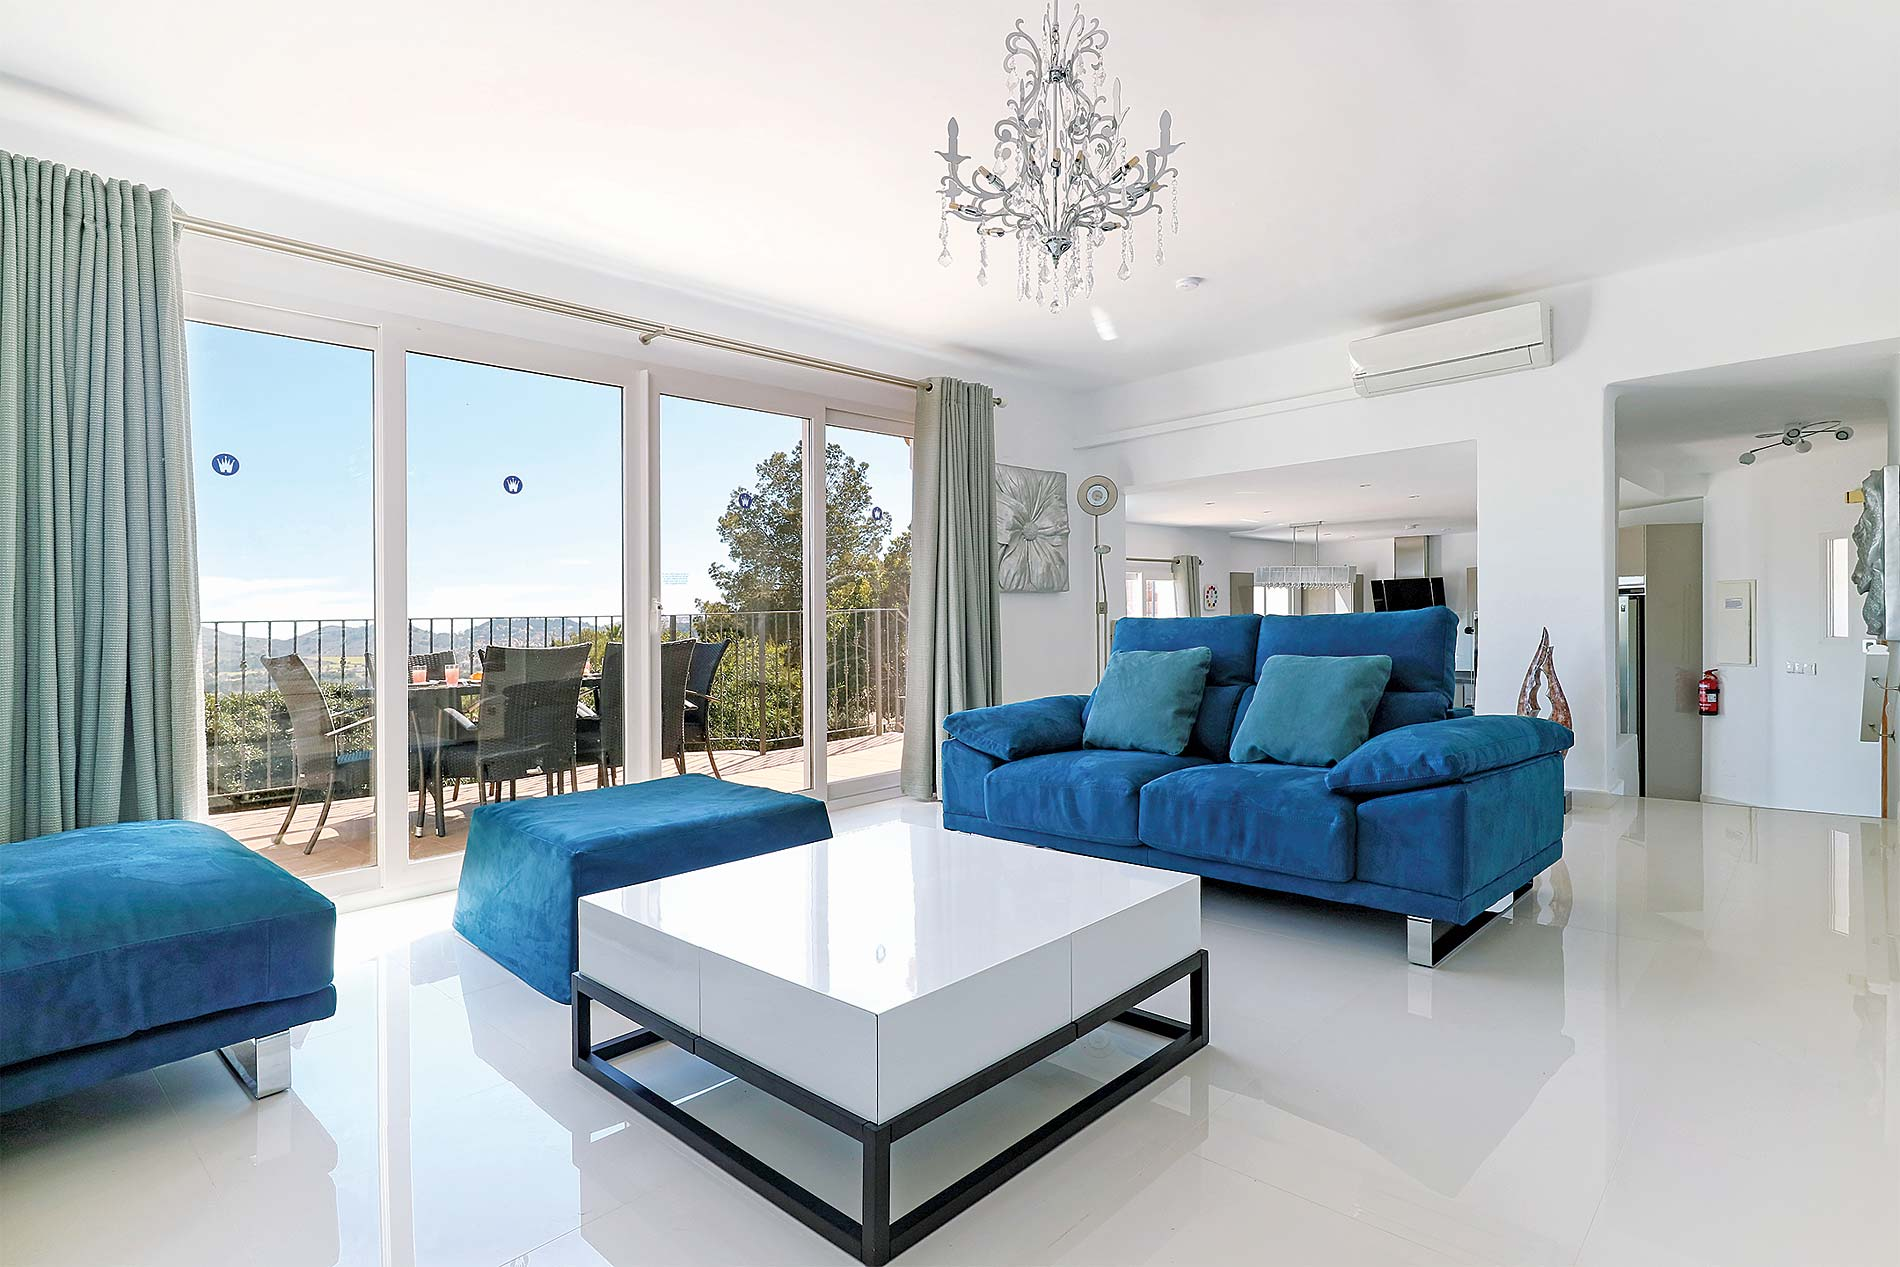 Villa Casa Lirios in La Manga Club - sleeps 8 people